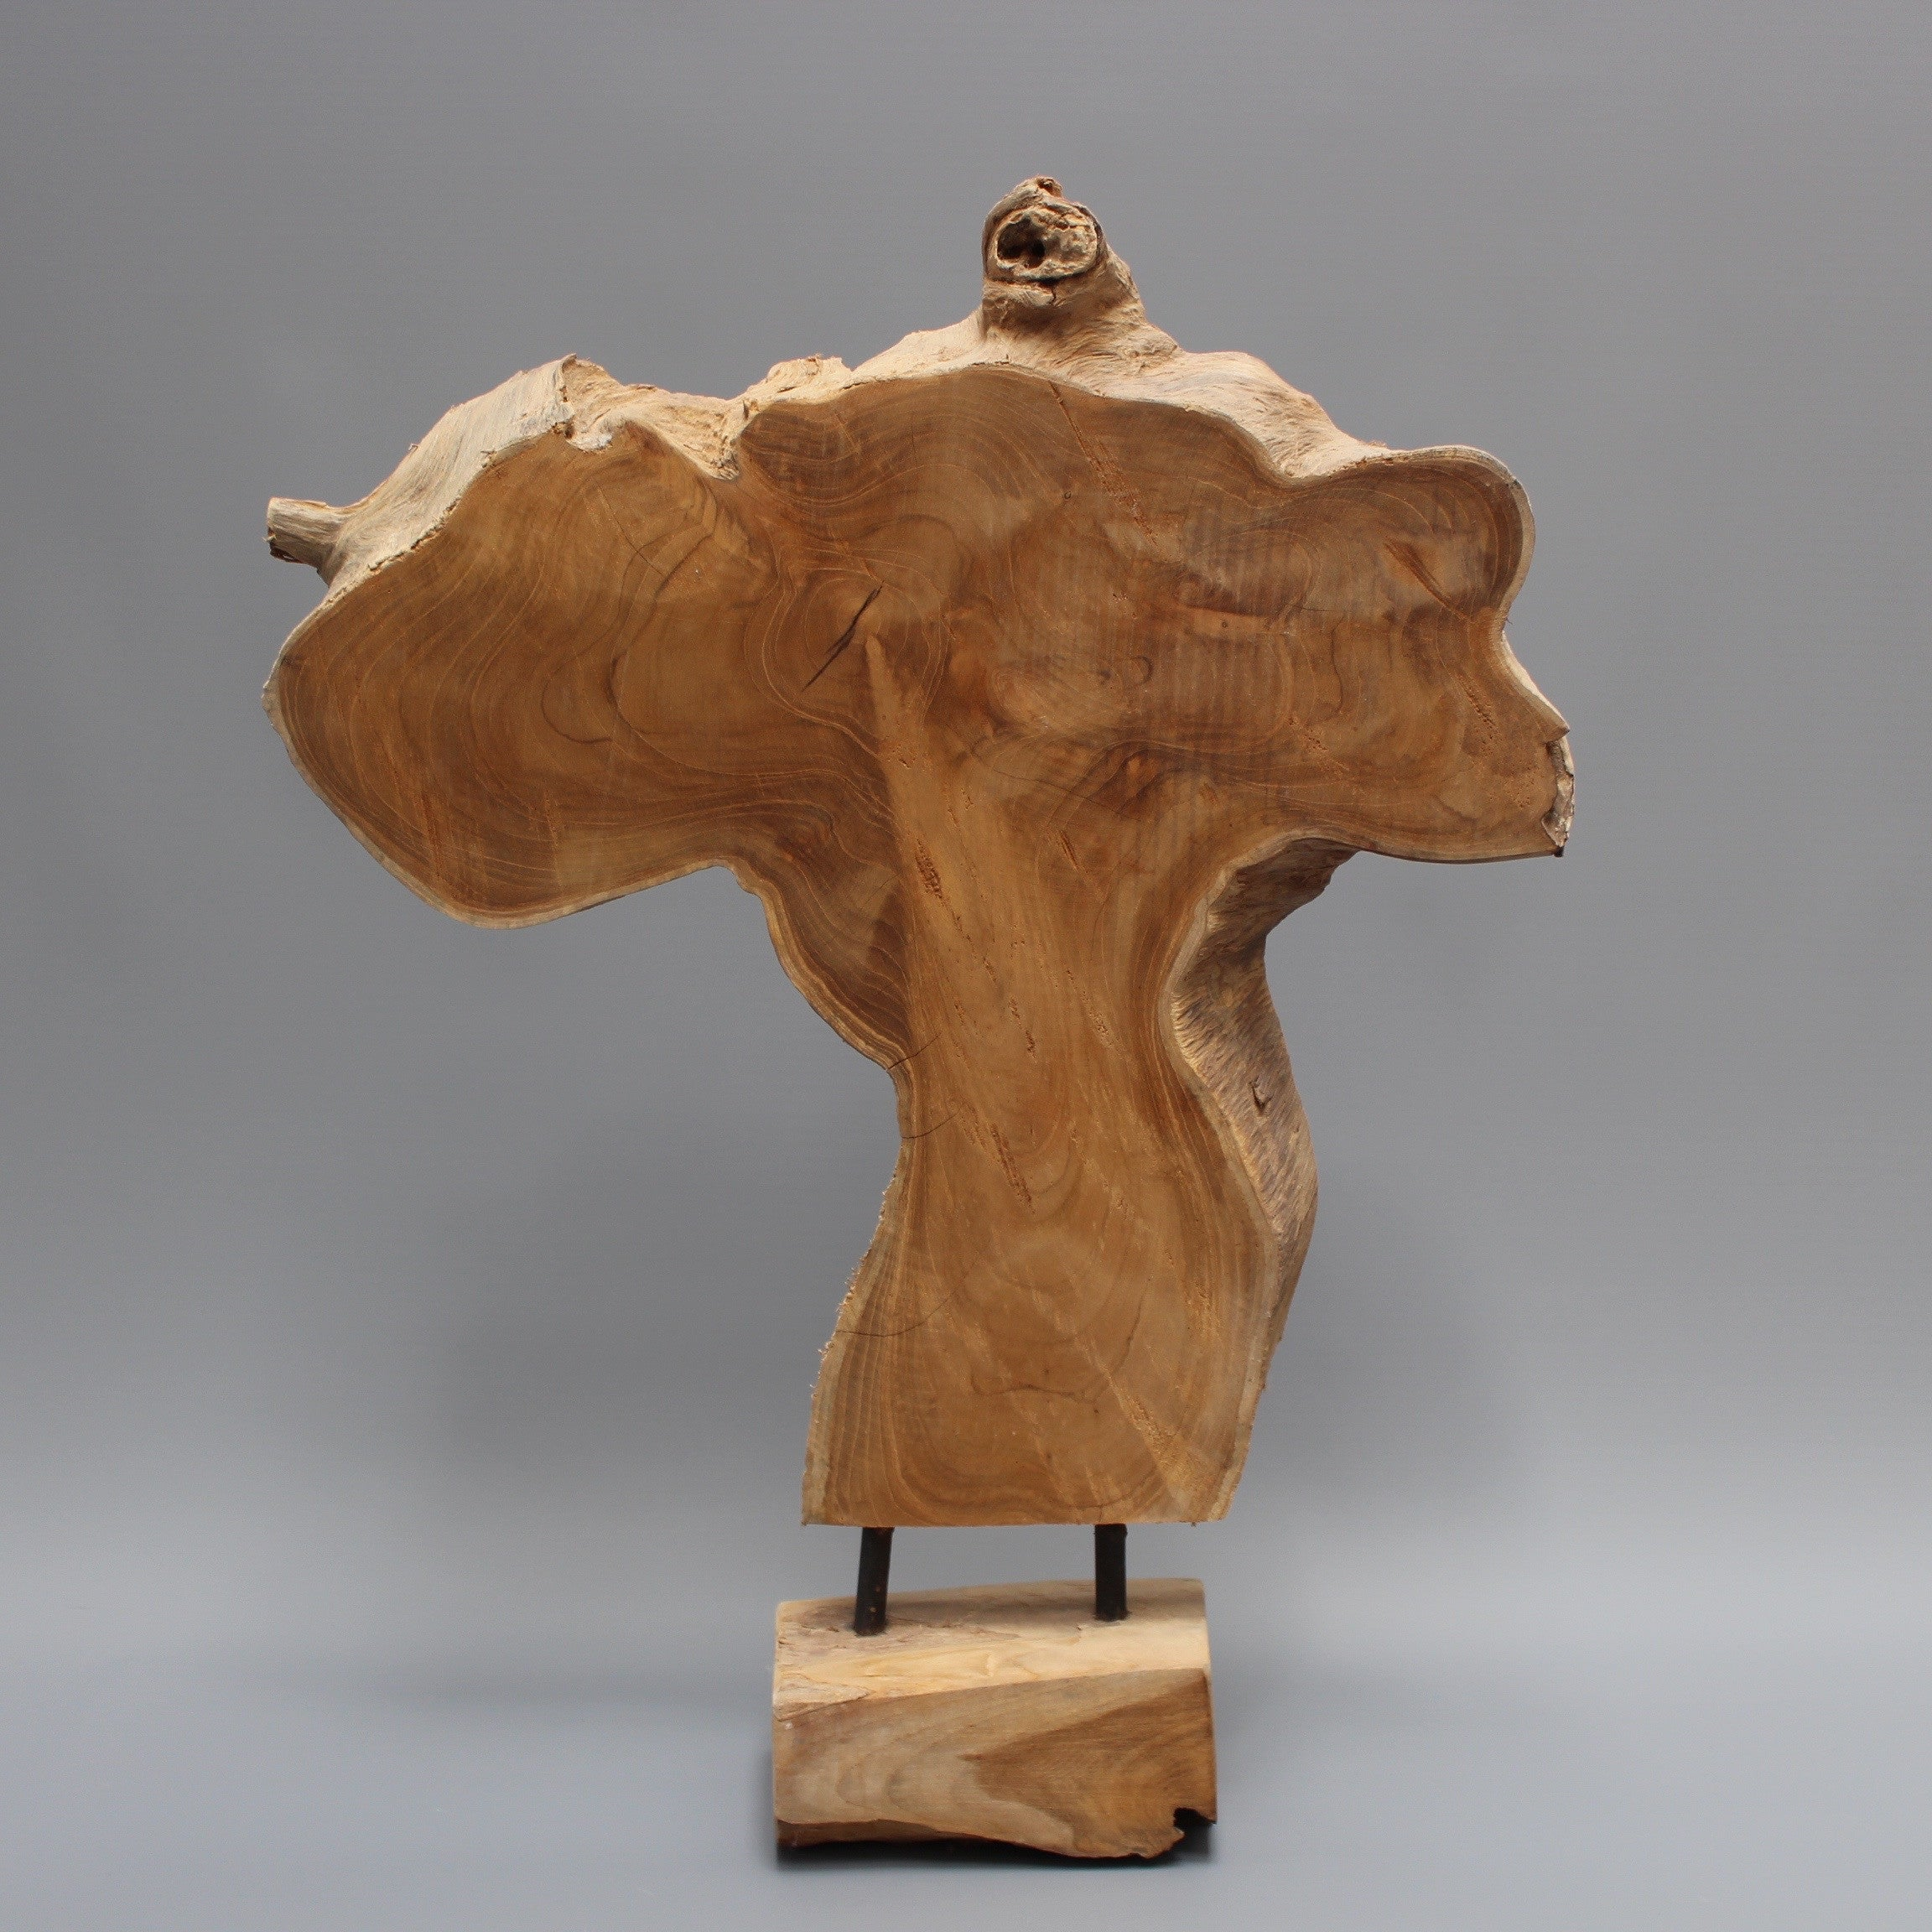 Japanese Natural Wood Sculpture (c. 1990s)